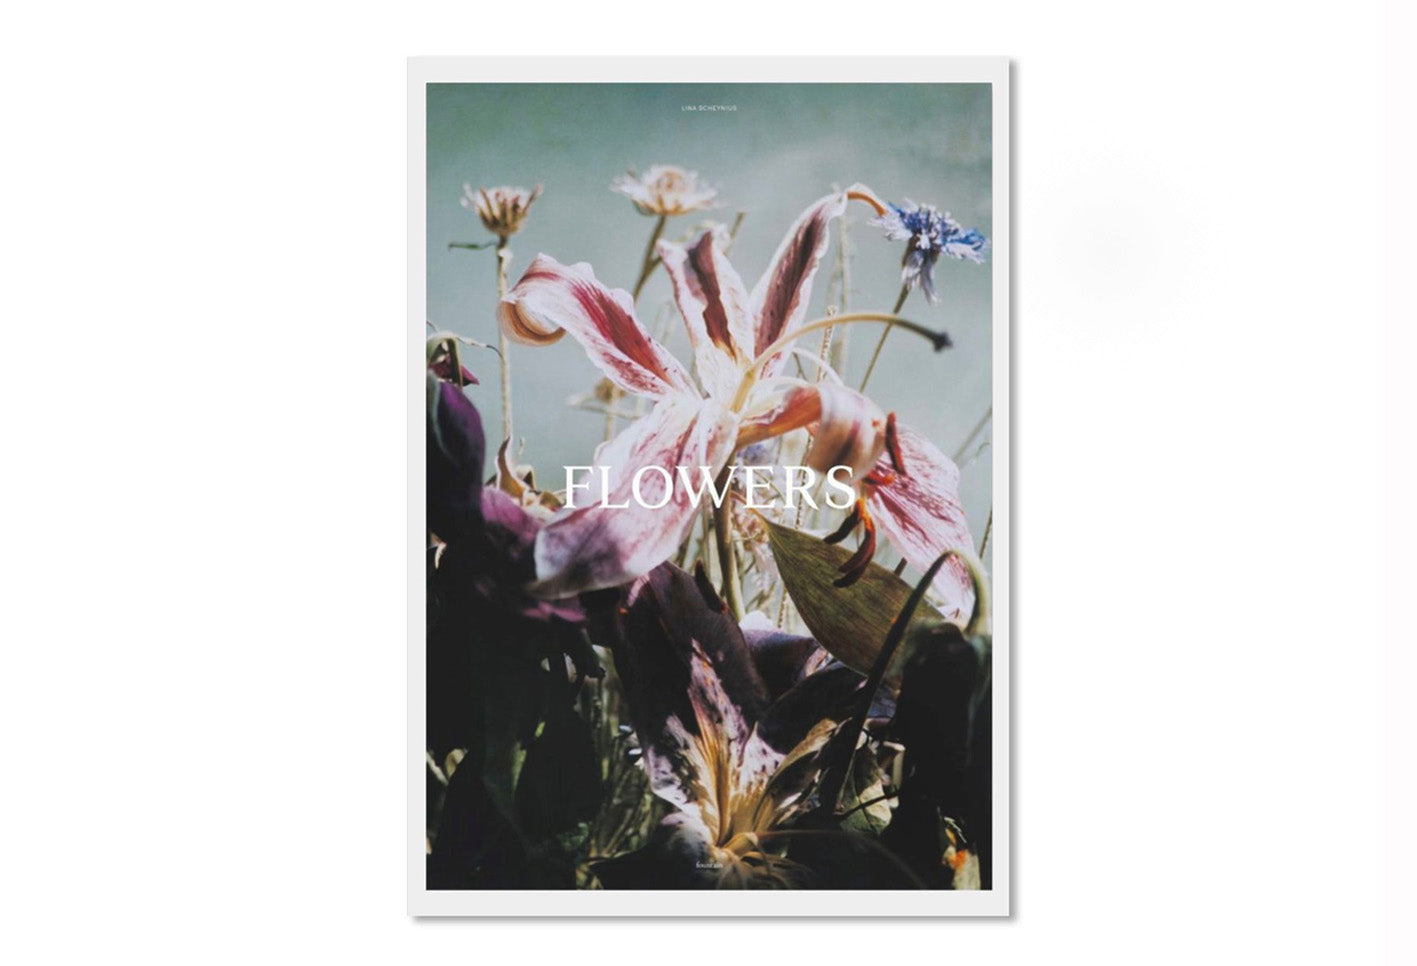 Flowers - signed